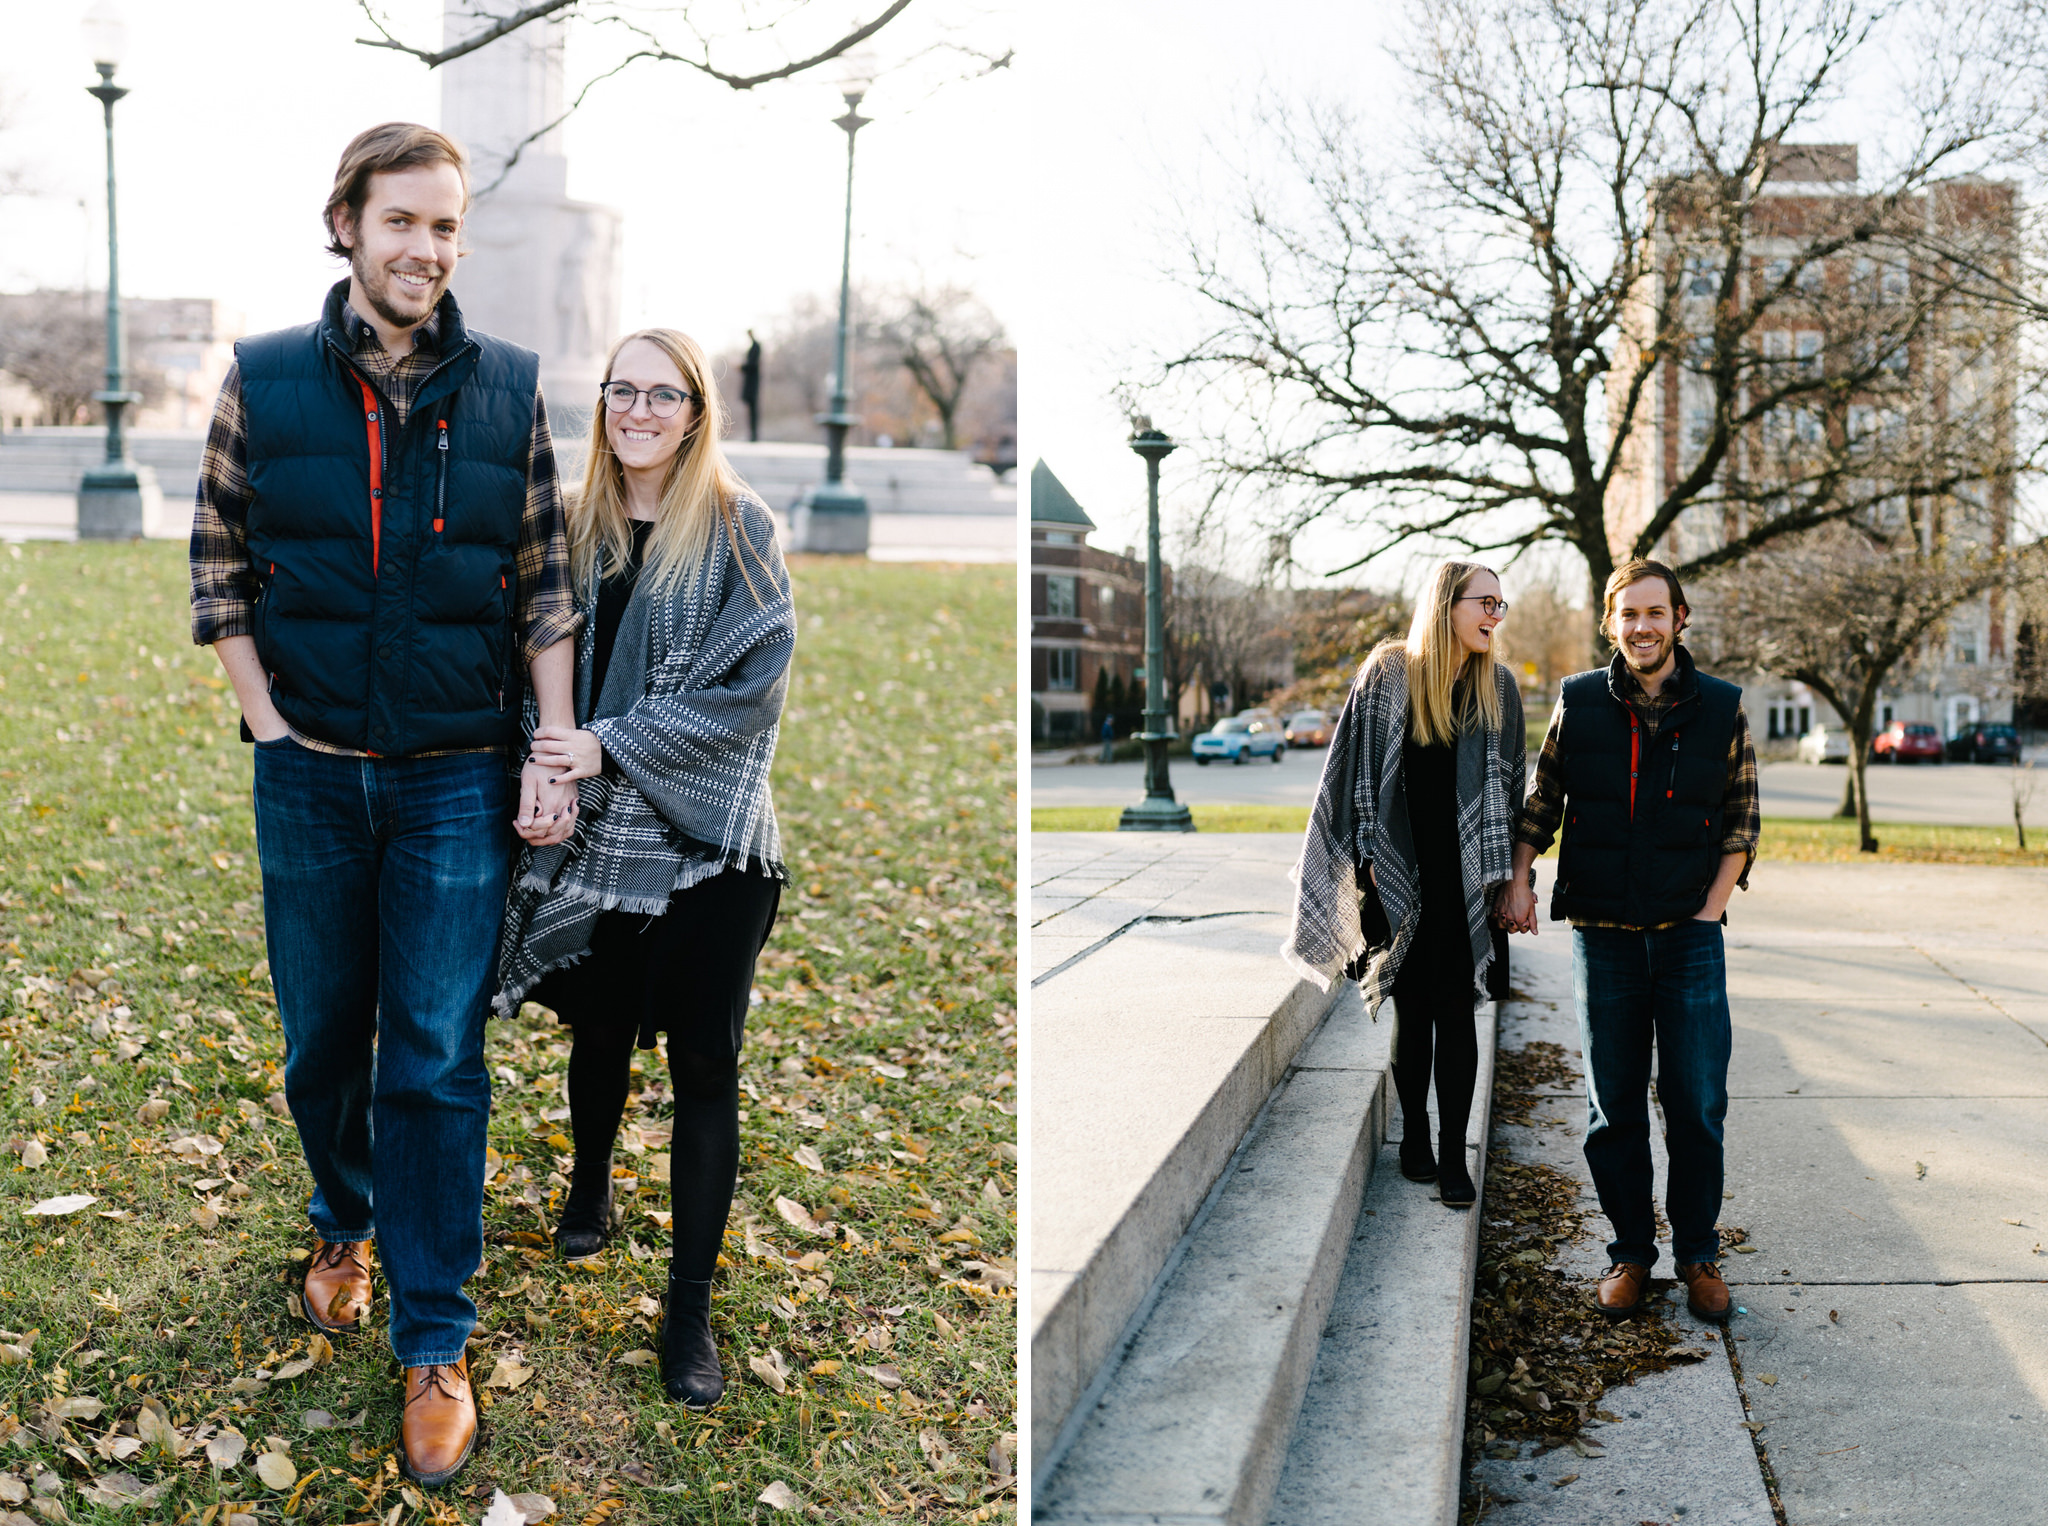 002-rempel-photography-wedding-chicago-family-oak-park-erin-kyle-logan-square-engagement-inspiration.jpg